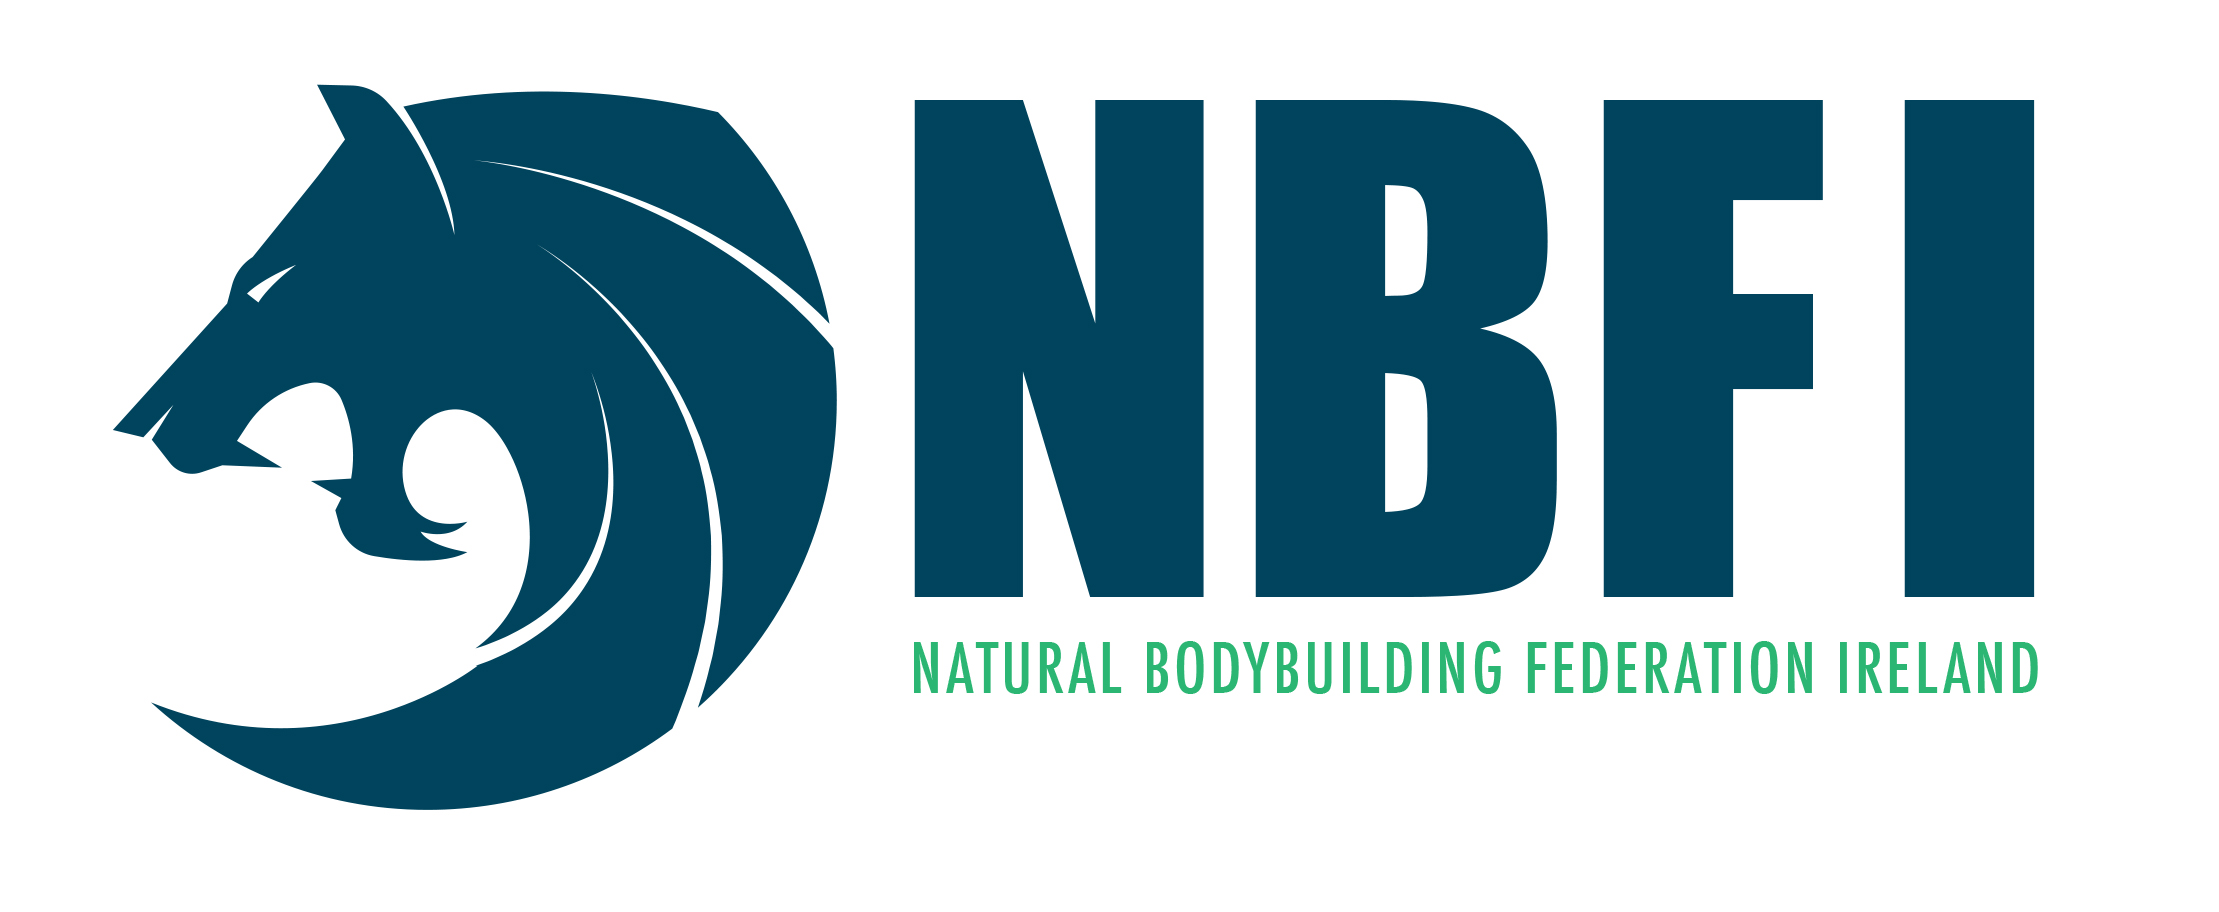 Natural Bodybuilding Federation of Ireland